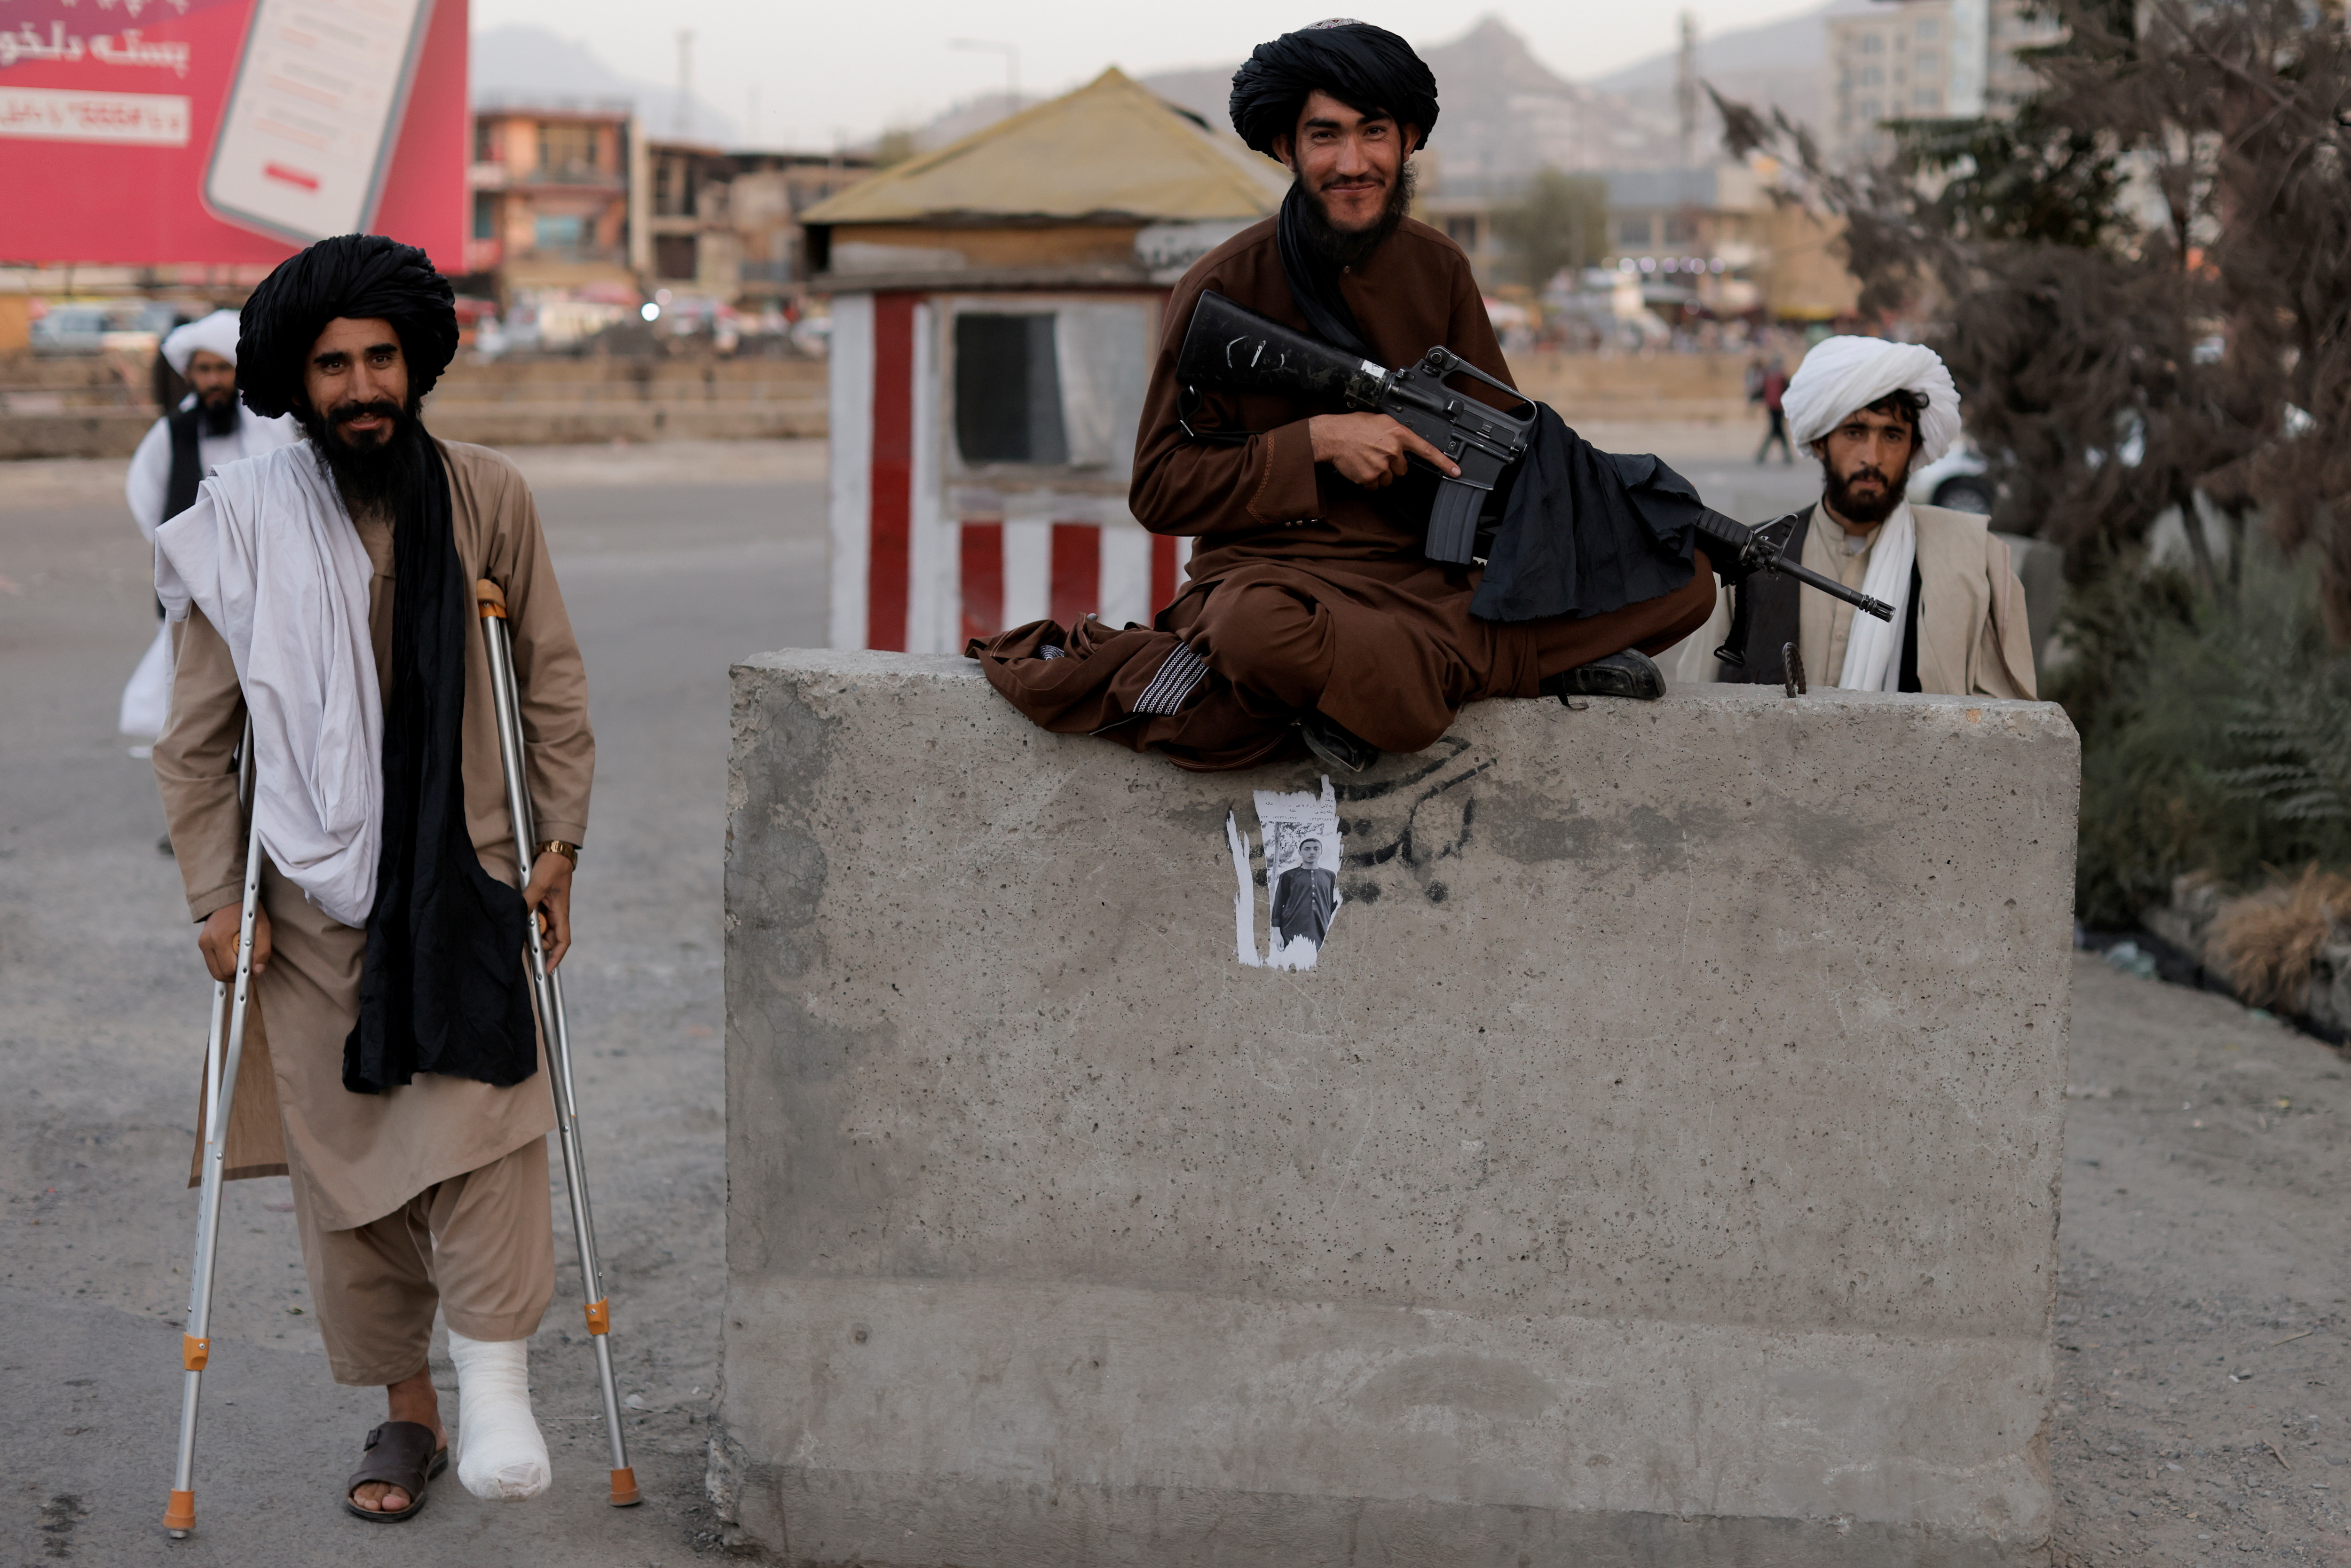 Taliban fighter Mira Jan Himmat, 30, and Rafiullah, 26, from Helmand province smile as they stand guard in a checkpoint in Kabul, Afghanistan October 5, 2021. REUTERS/Jorge Silva